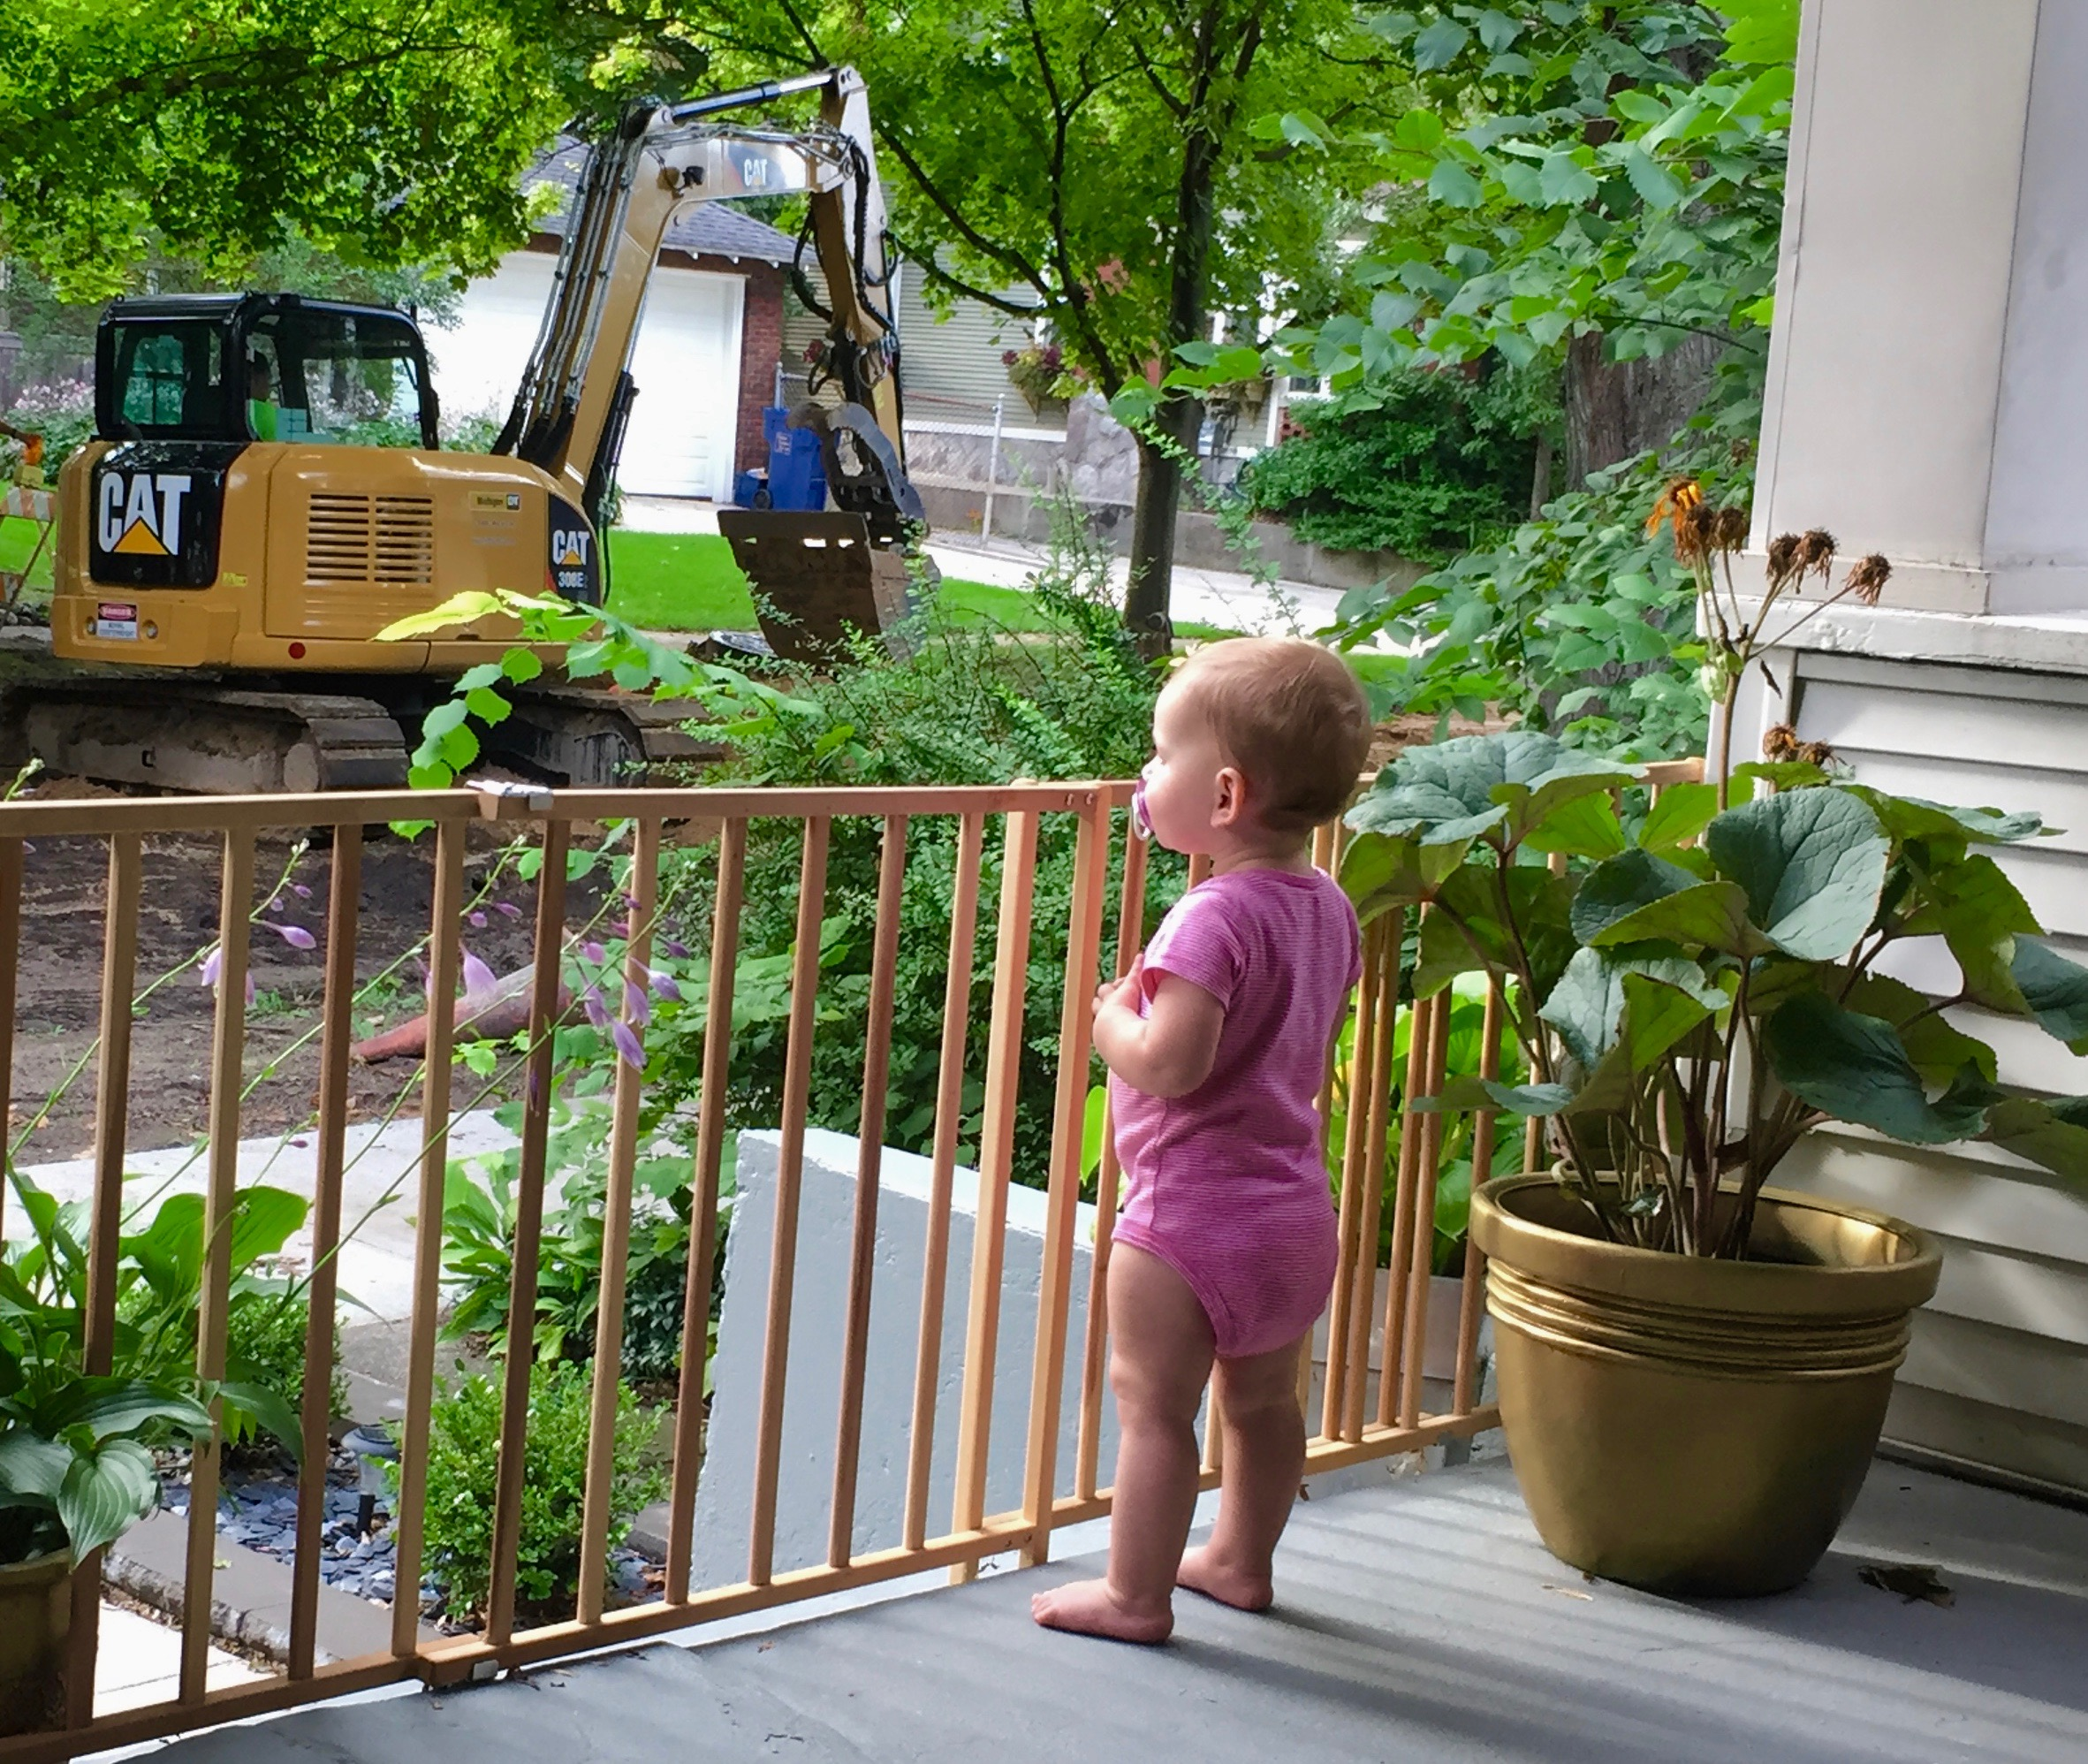 Natalie is loving the commotion on our street much more than Jeff and I are.